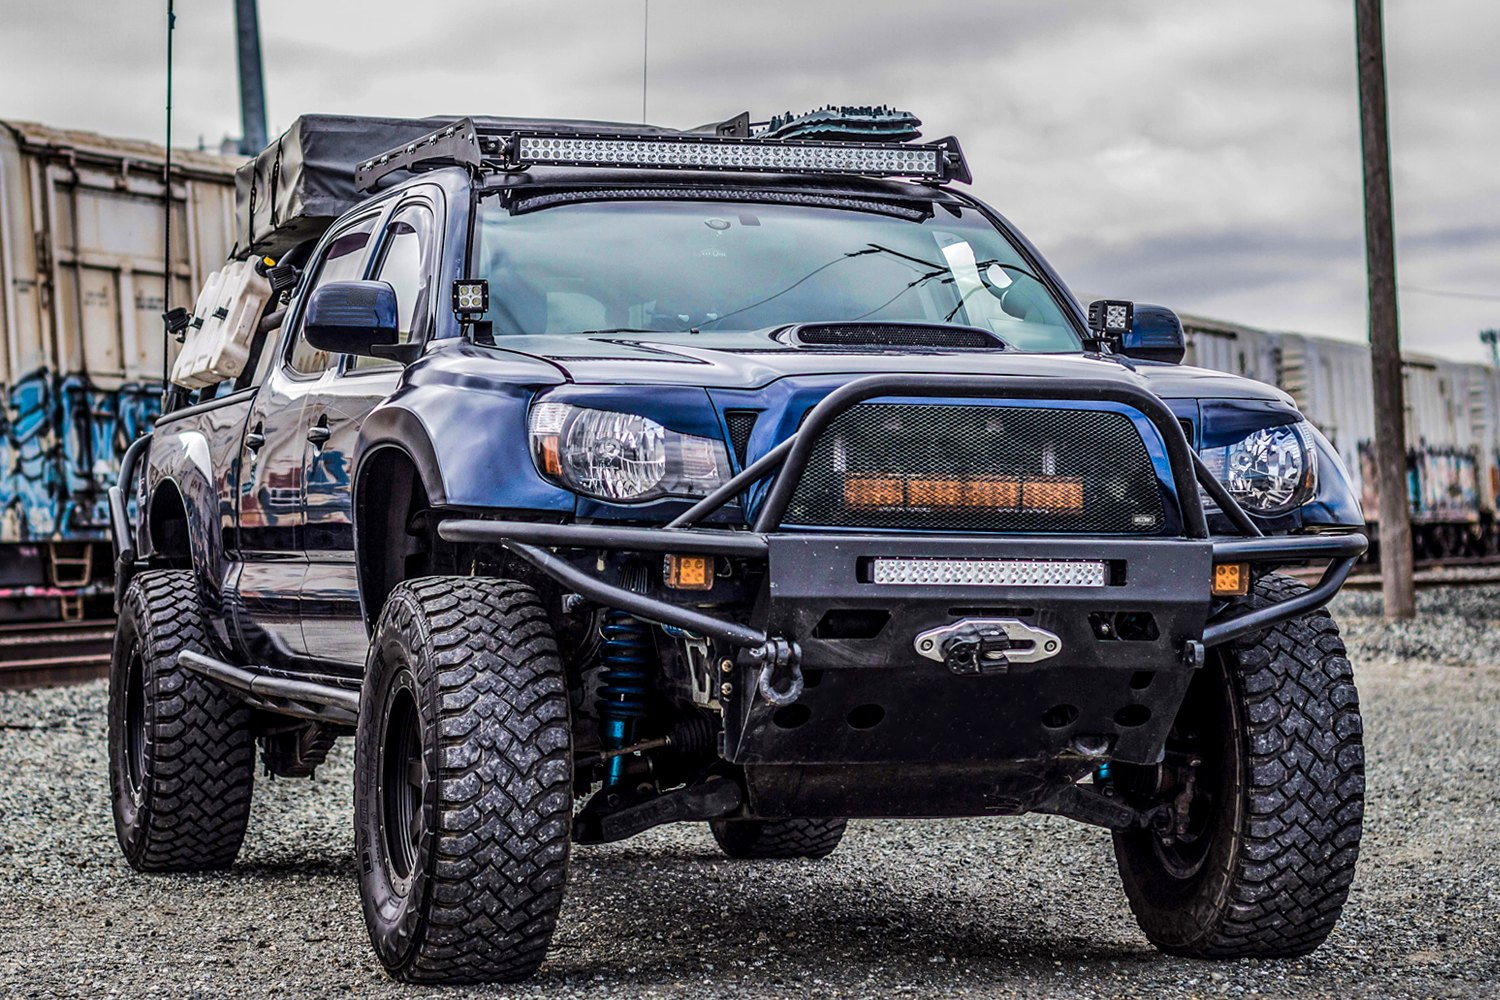 Toyota Tacoma Mods >> Blue Rescue Toyota Tacoma From Grillcraft Carid Com Gallery